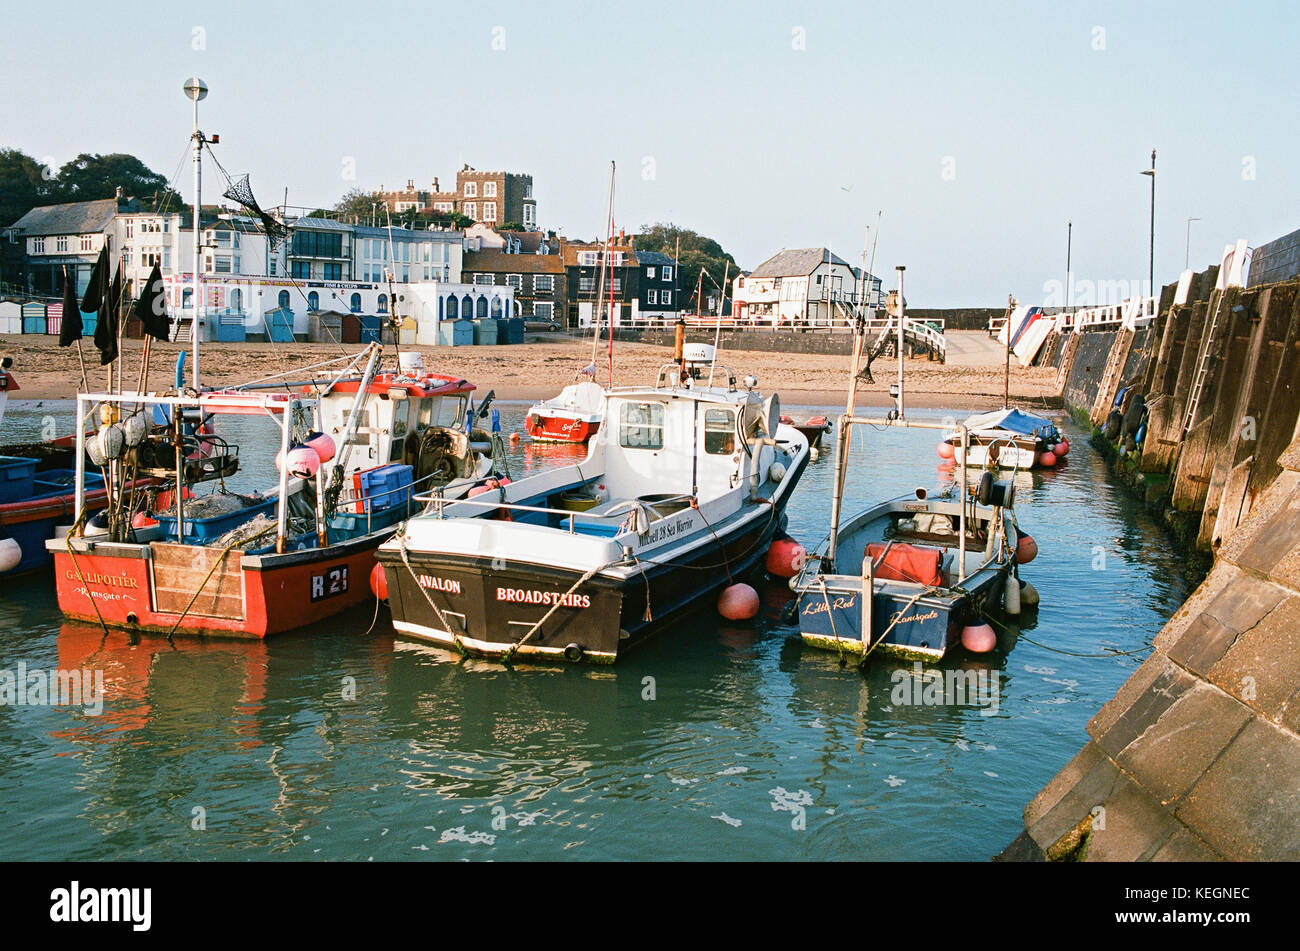 Fishing Boats in Broadstairs Harbour, Isle of Thanet, East Kent, UK - Stock Image